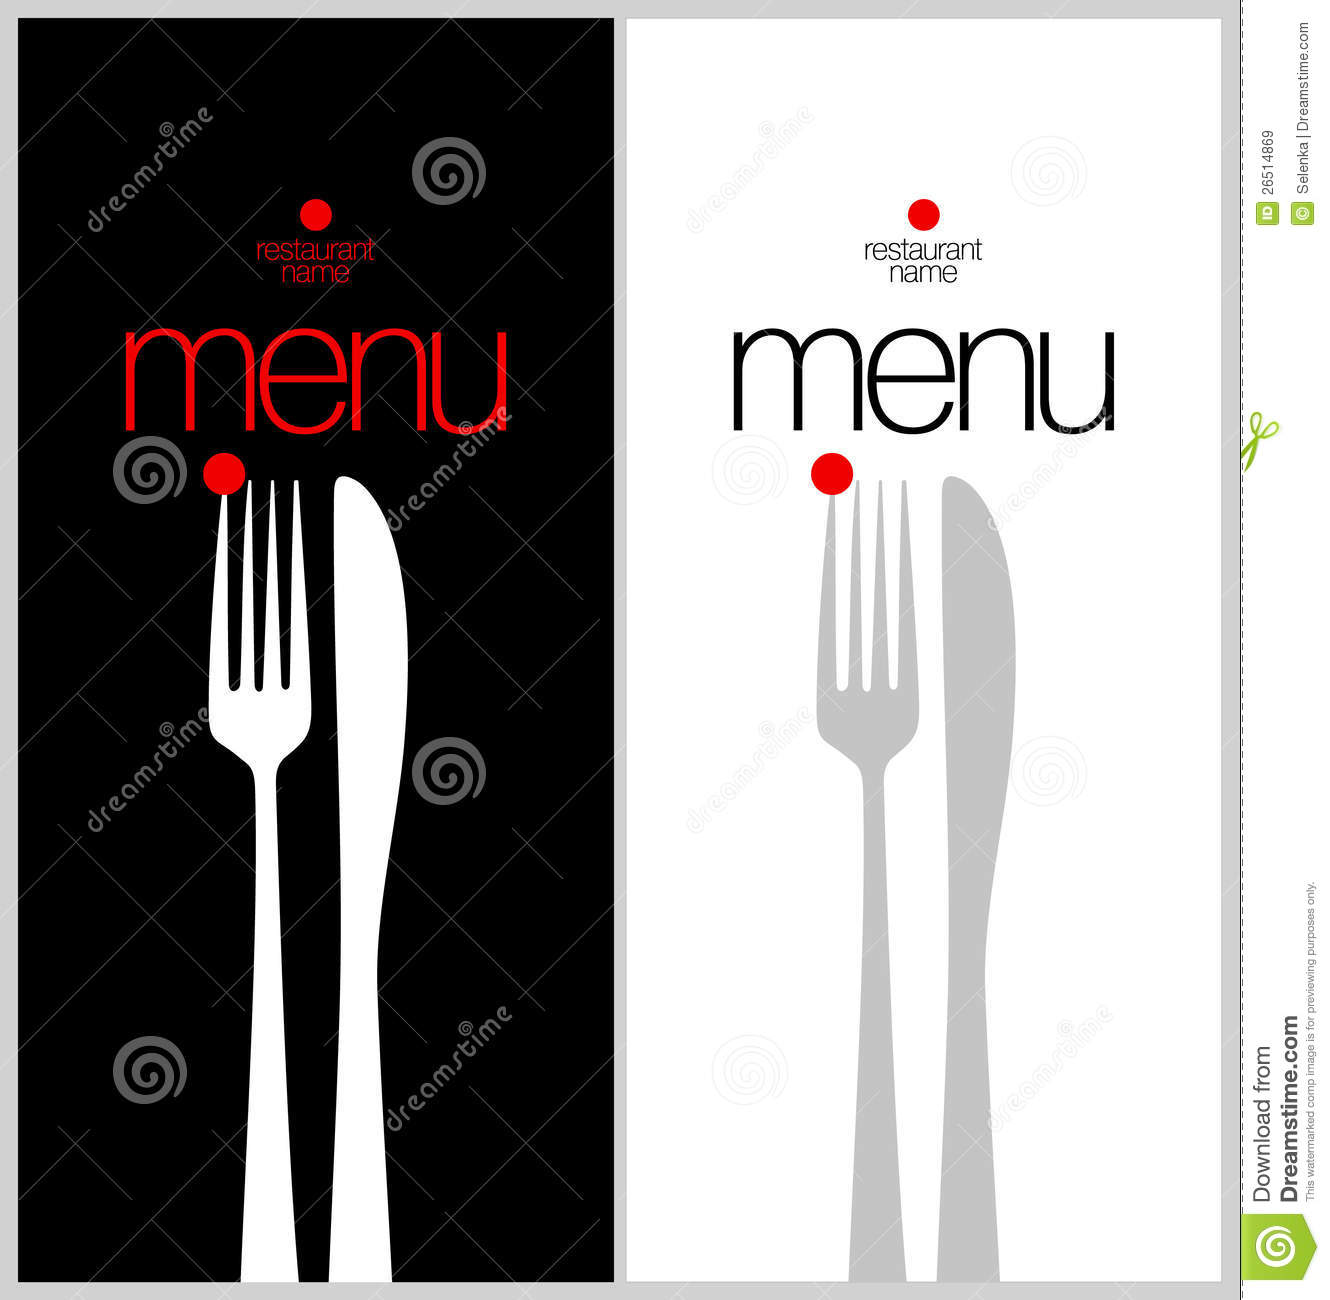 how to look out for menu card in a restaurant